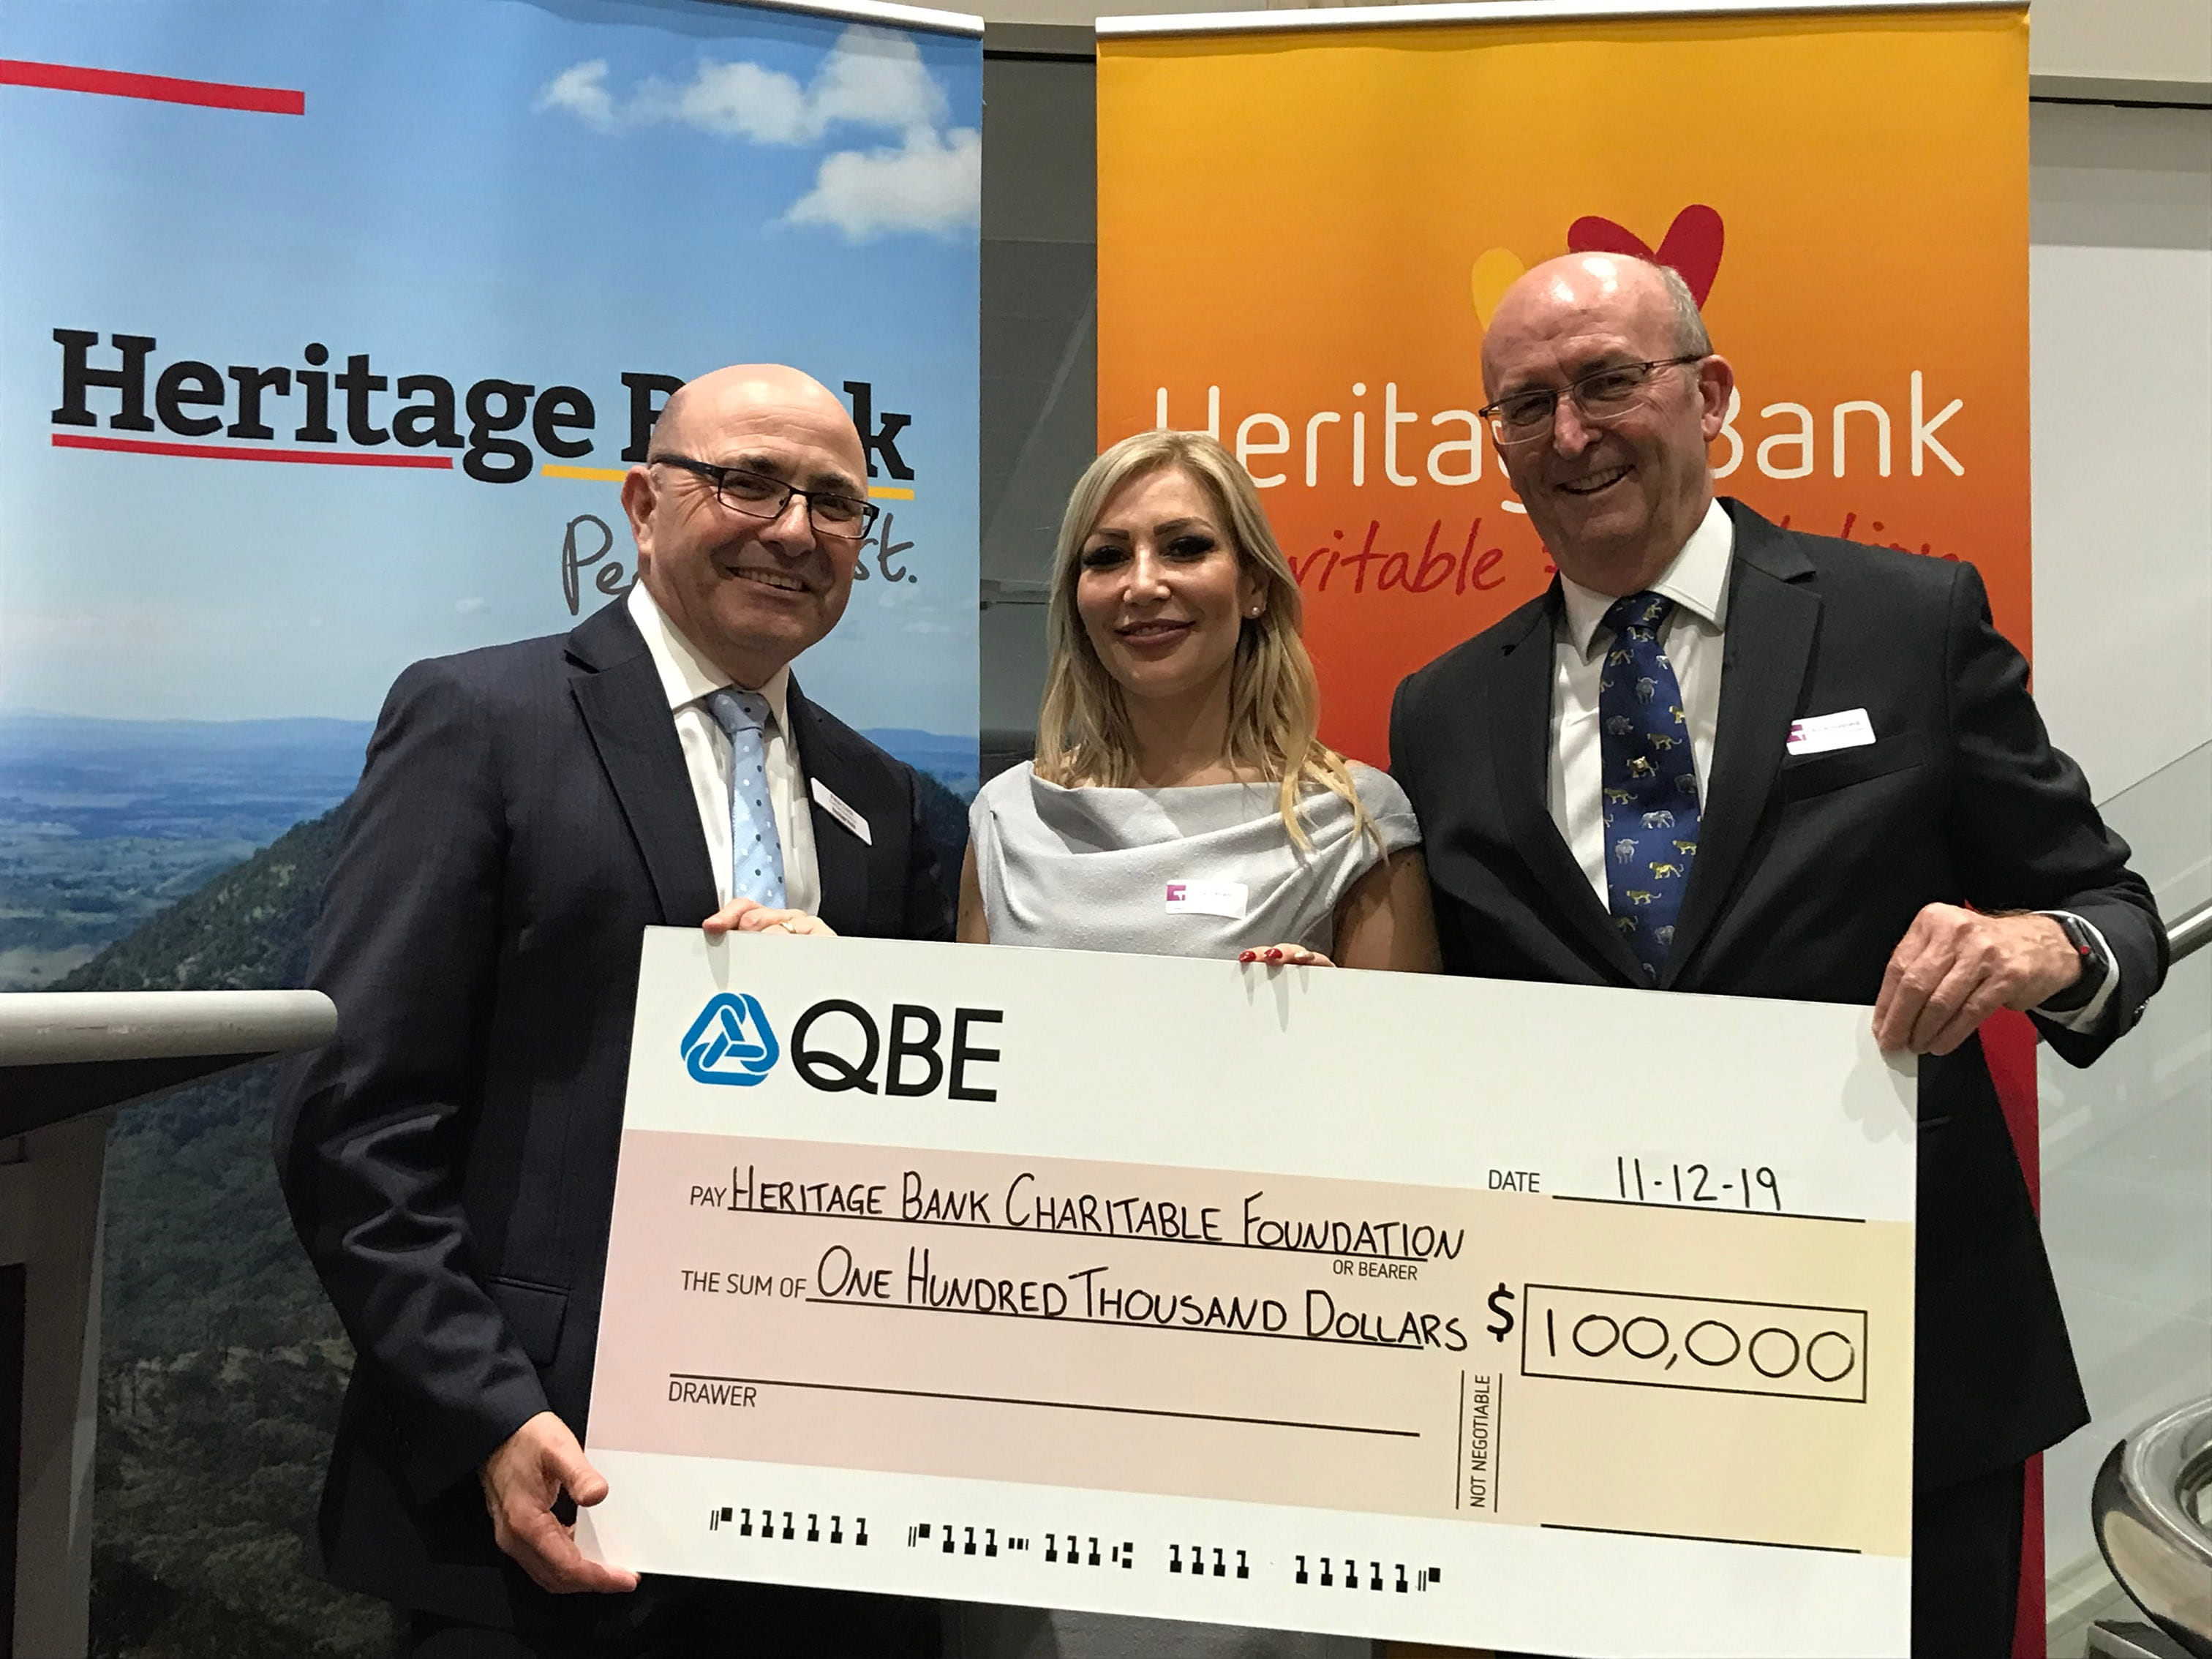 QBE supports the Heritage Bank Charitable Foundation